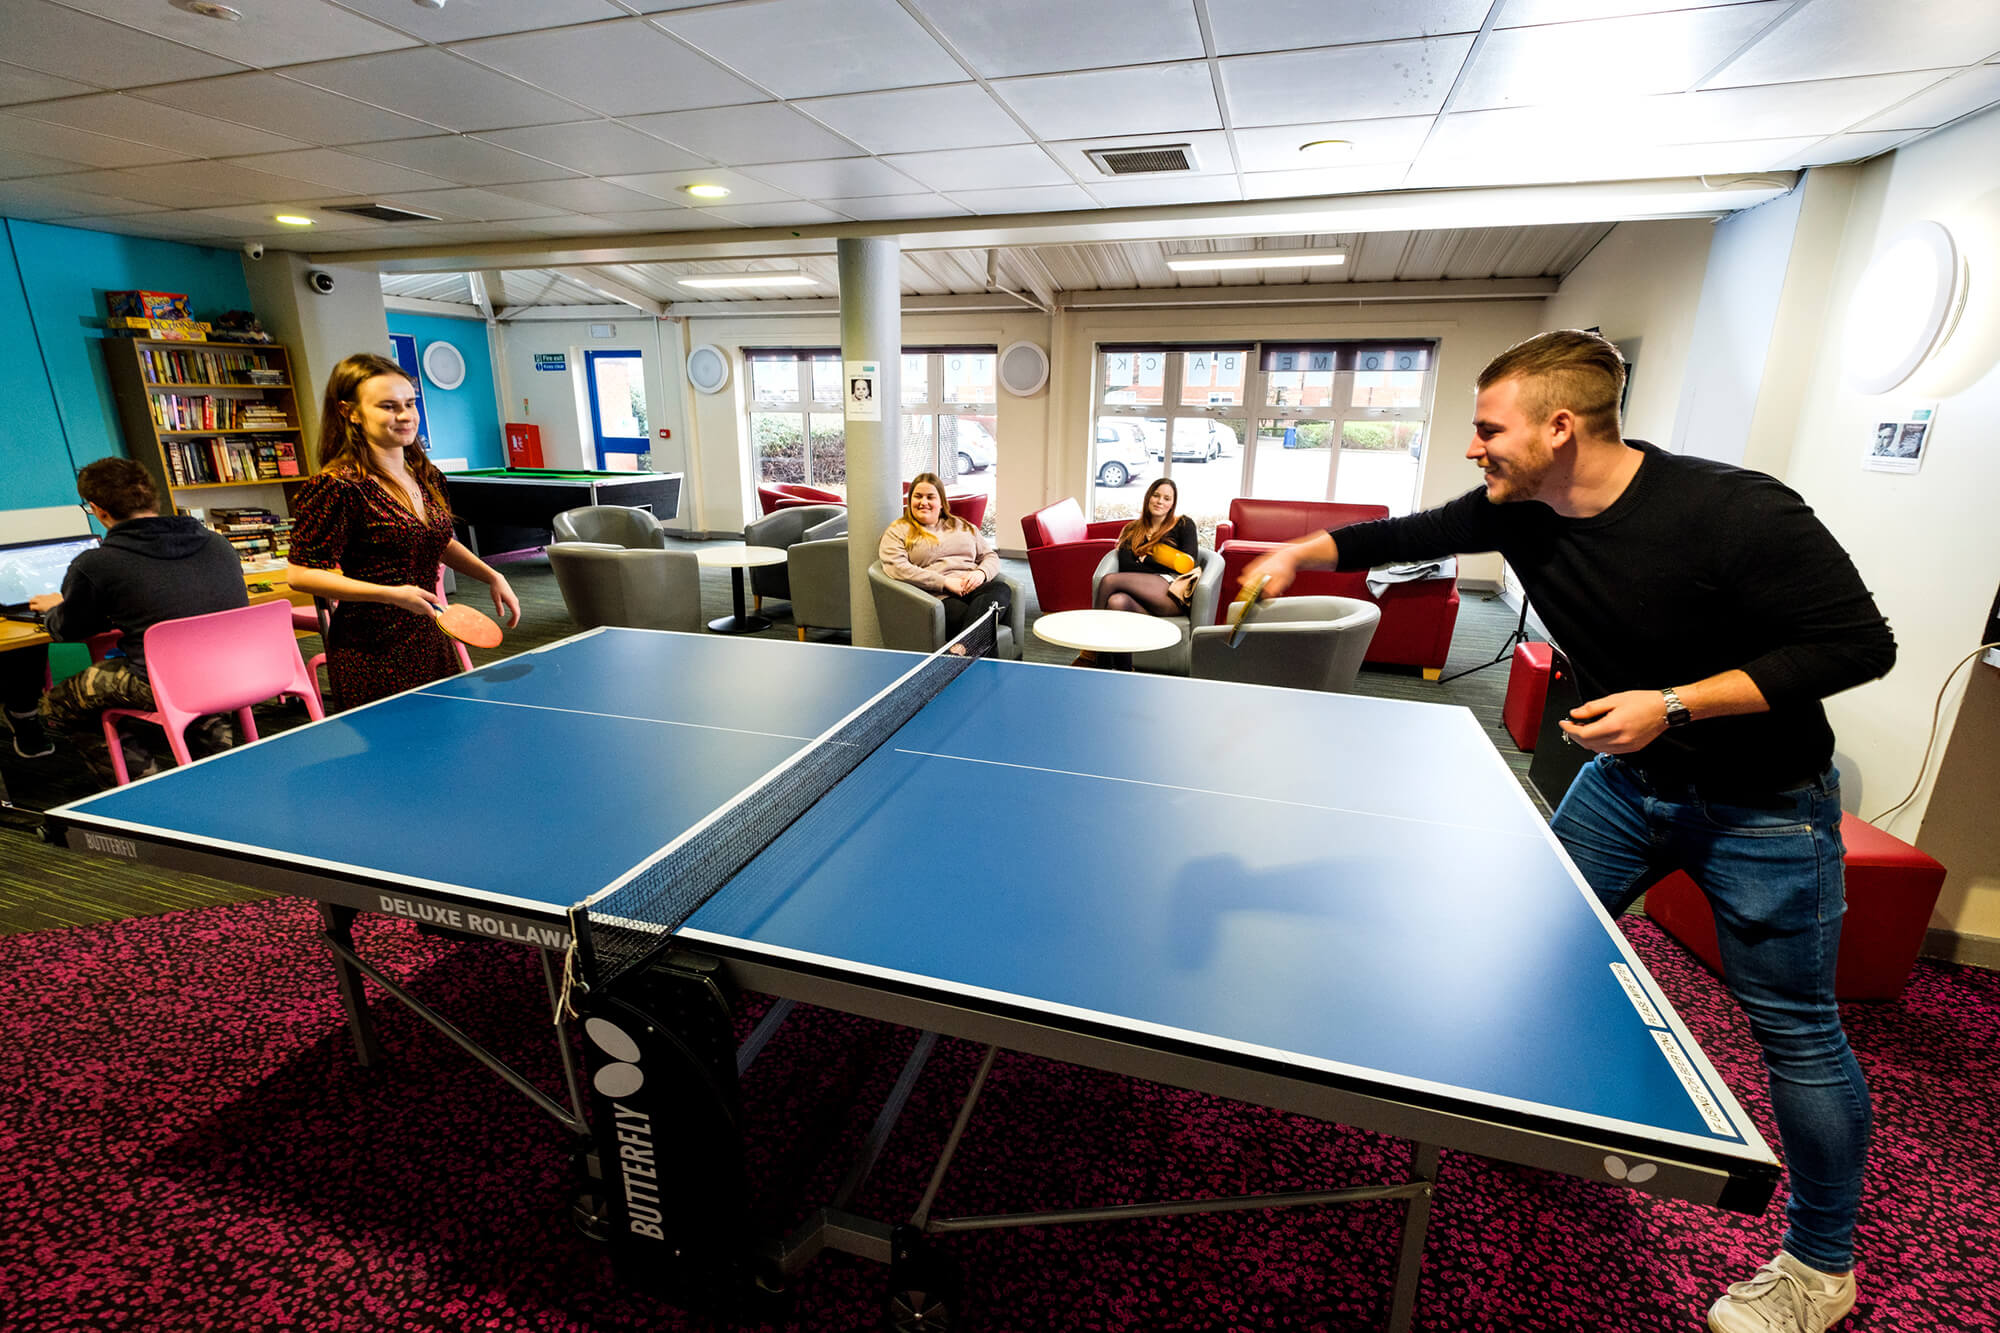 Students playing table tennis in halls